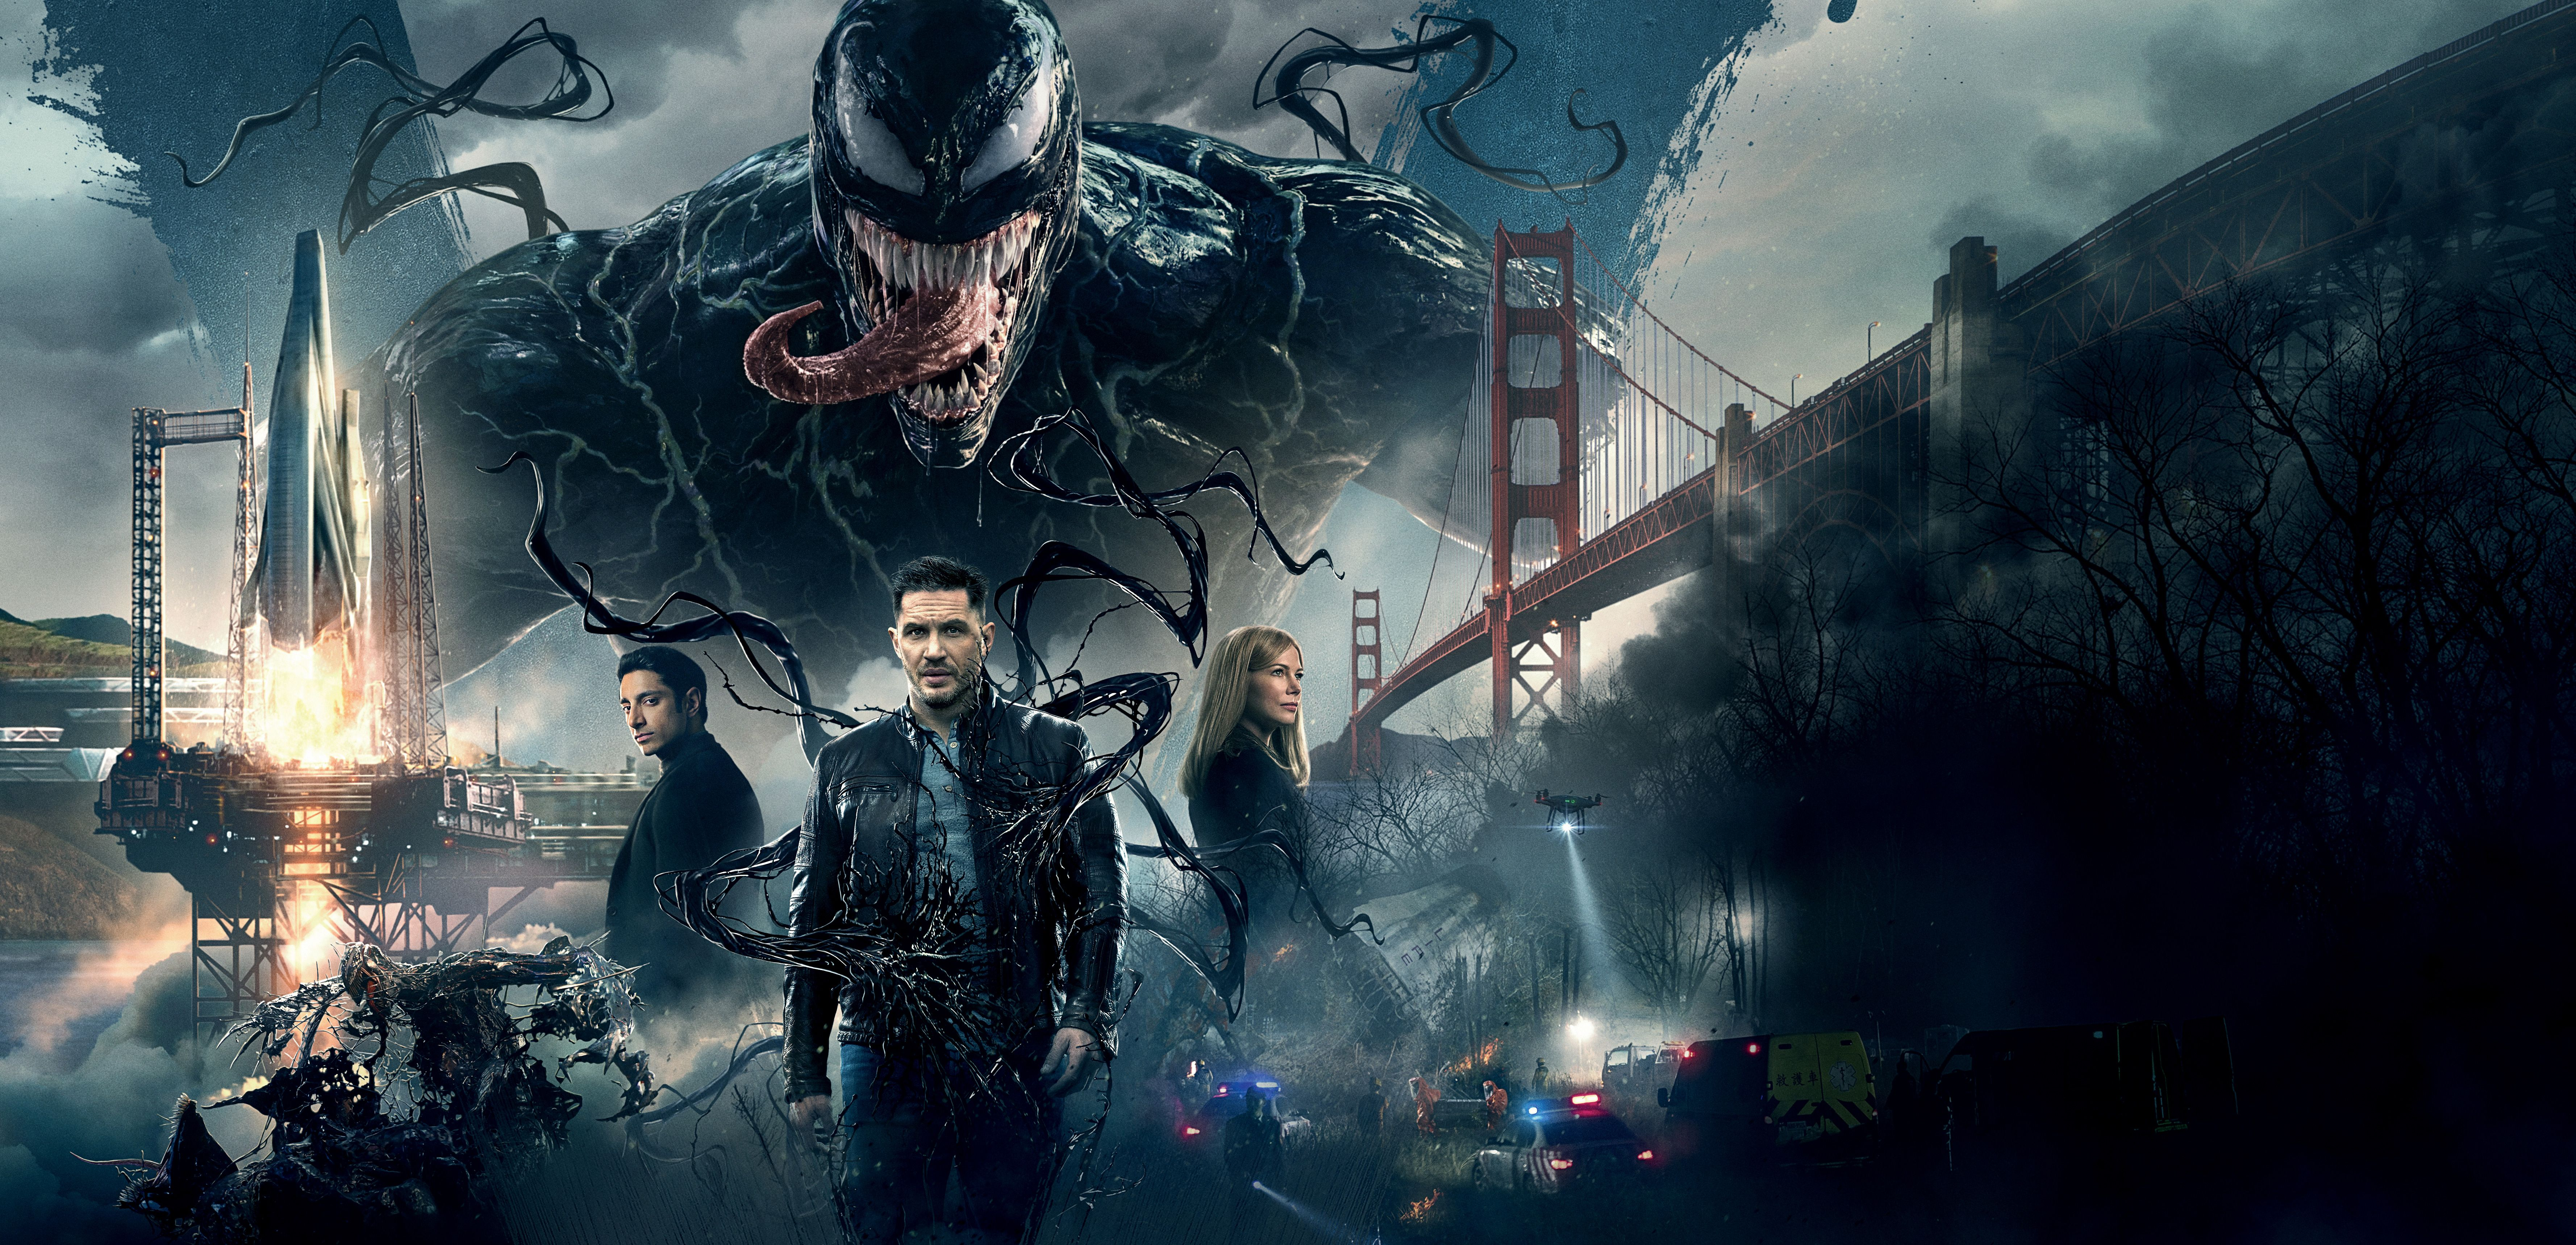 7110x3437 Venom Movie 2018 8k, HD Movies, 4k Wallpapers, Images, Backgrounds ...